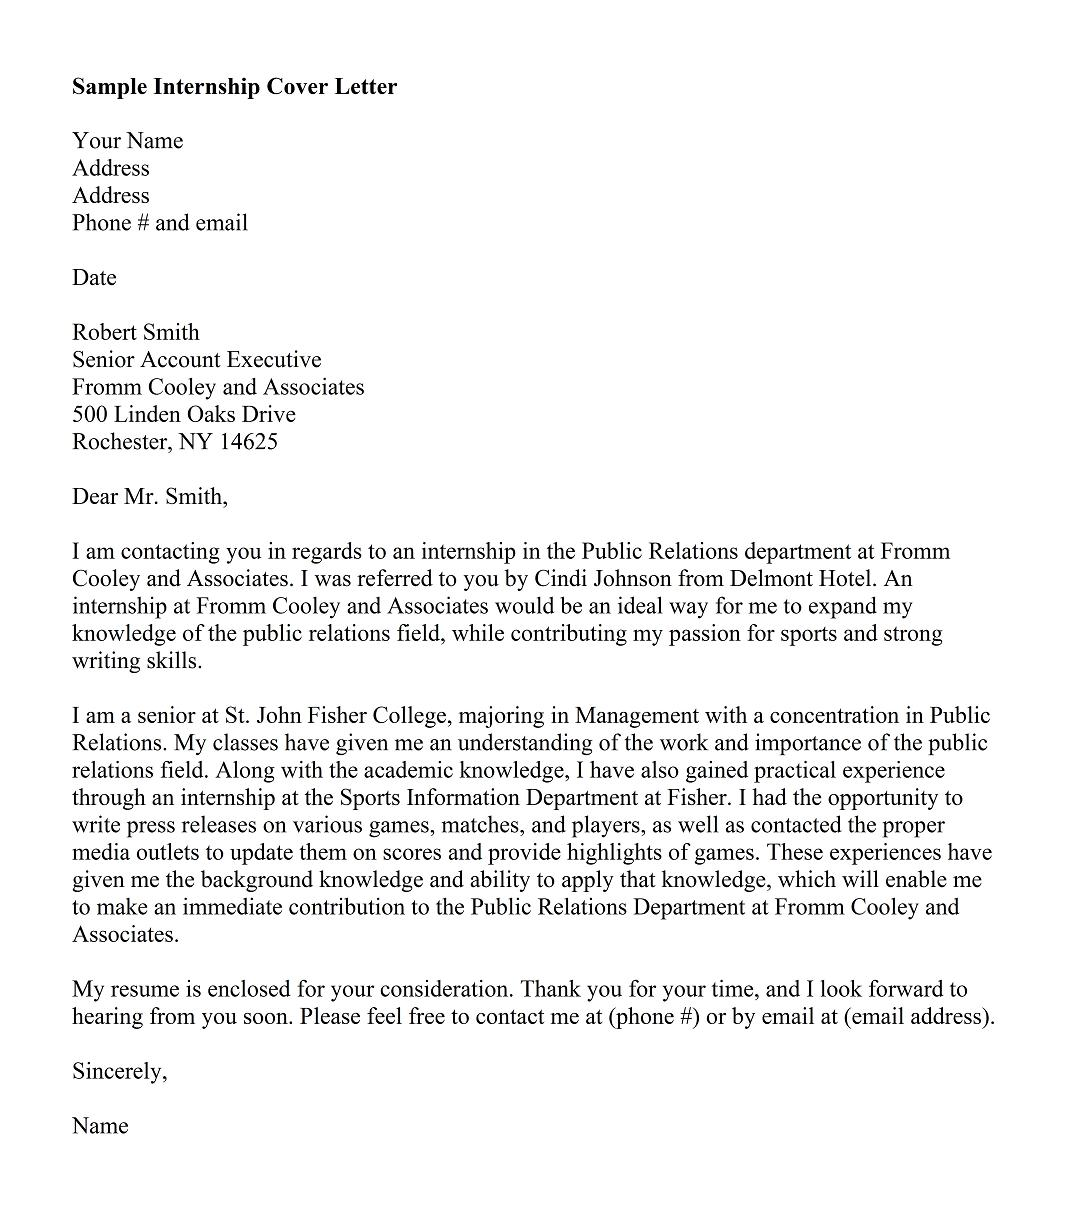 How to Write a Cover Letter 2018 - Extensive Guide [+Examples]